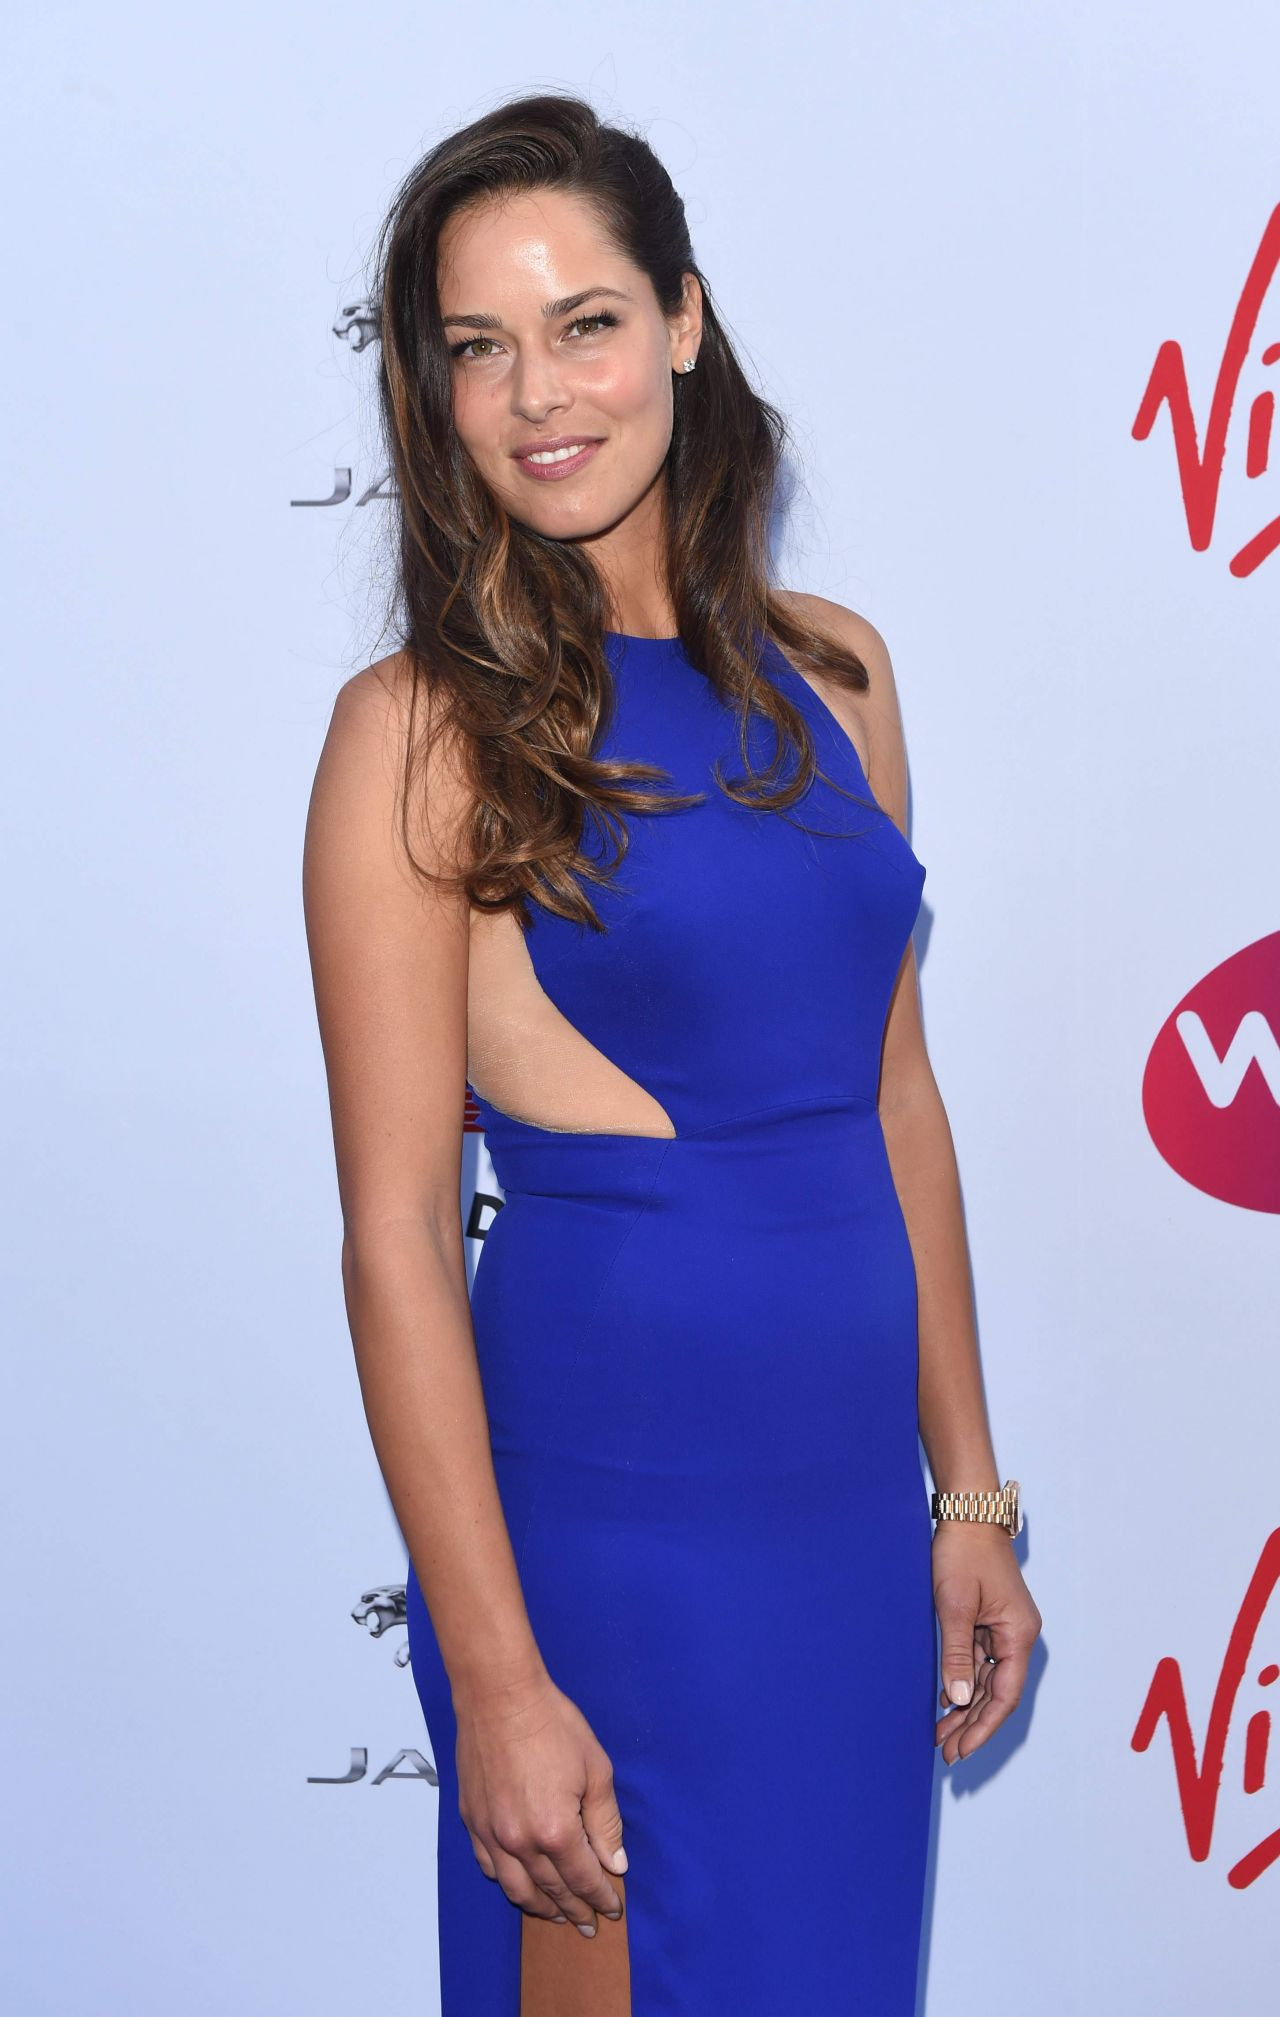 Ana Ivanovic Style - Pre-Wimbledon Party 2015 at ...